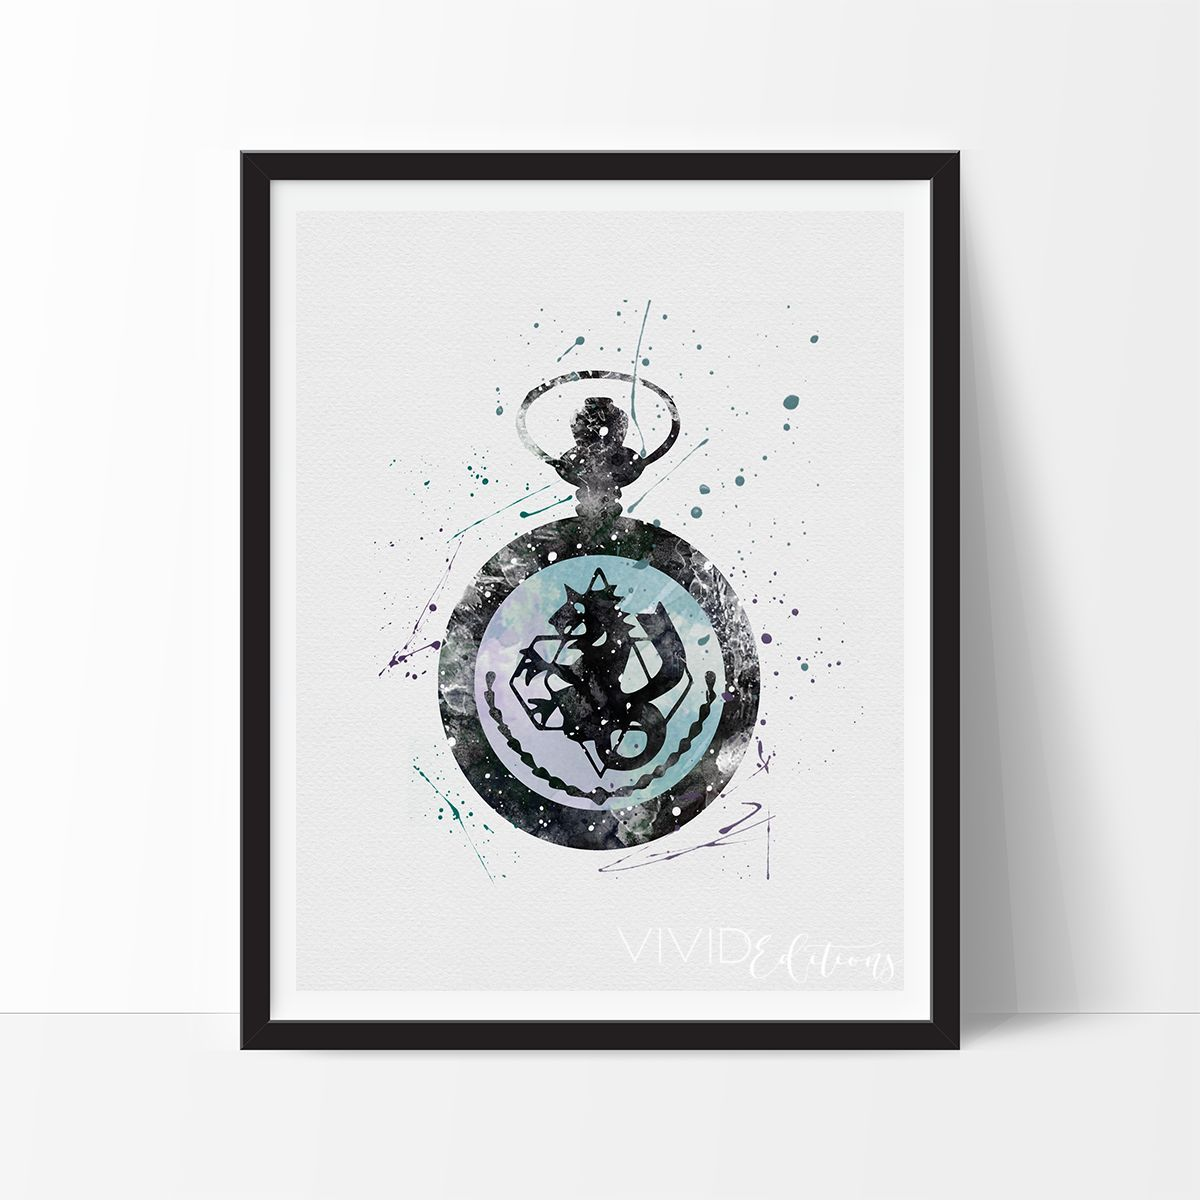 Fullmetal alchemist pocket watch watercolor art print fullmetal description specs processing shipping create your own boy cave with our impressionistic splatter watercolor style handmade art prints jeuxipadfo Image collections